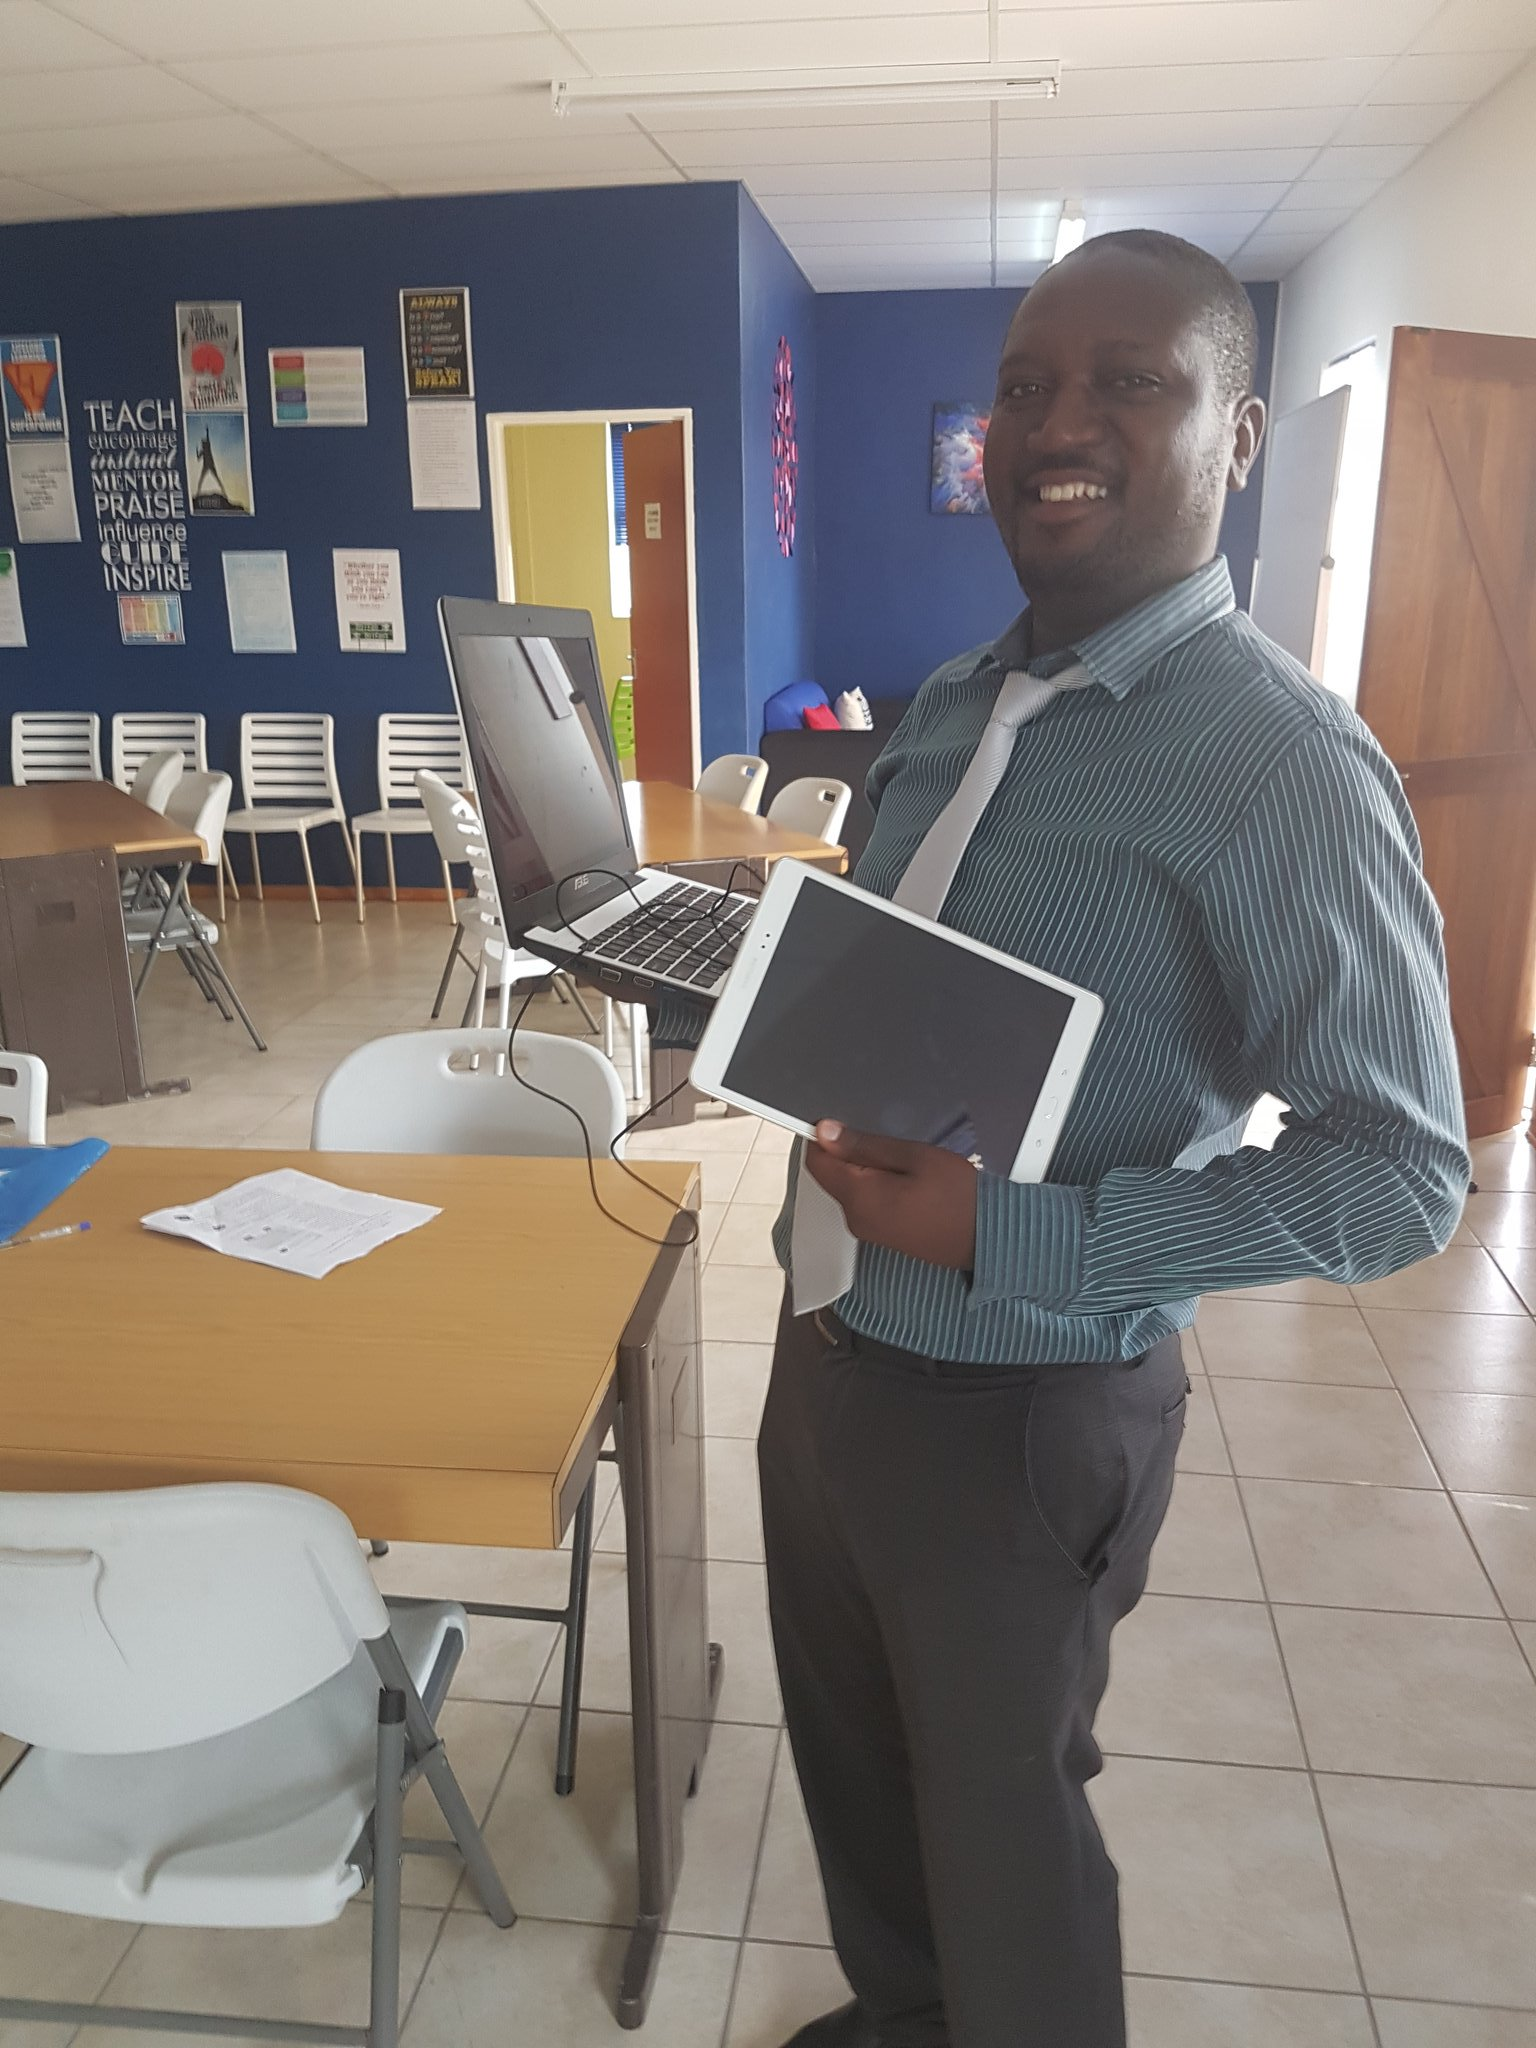 Look at all the tech!!!! #gapschools #ict4red @ZataNicholas https://t.co/o70Kpf0tsA